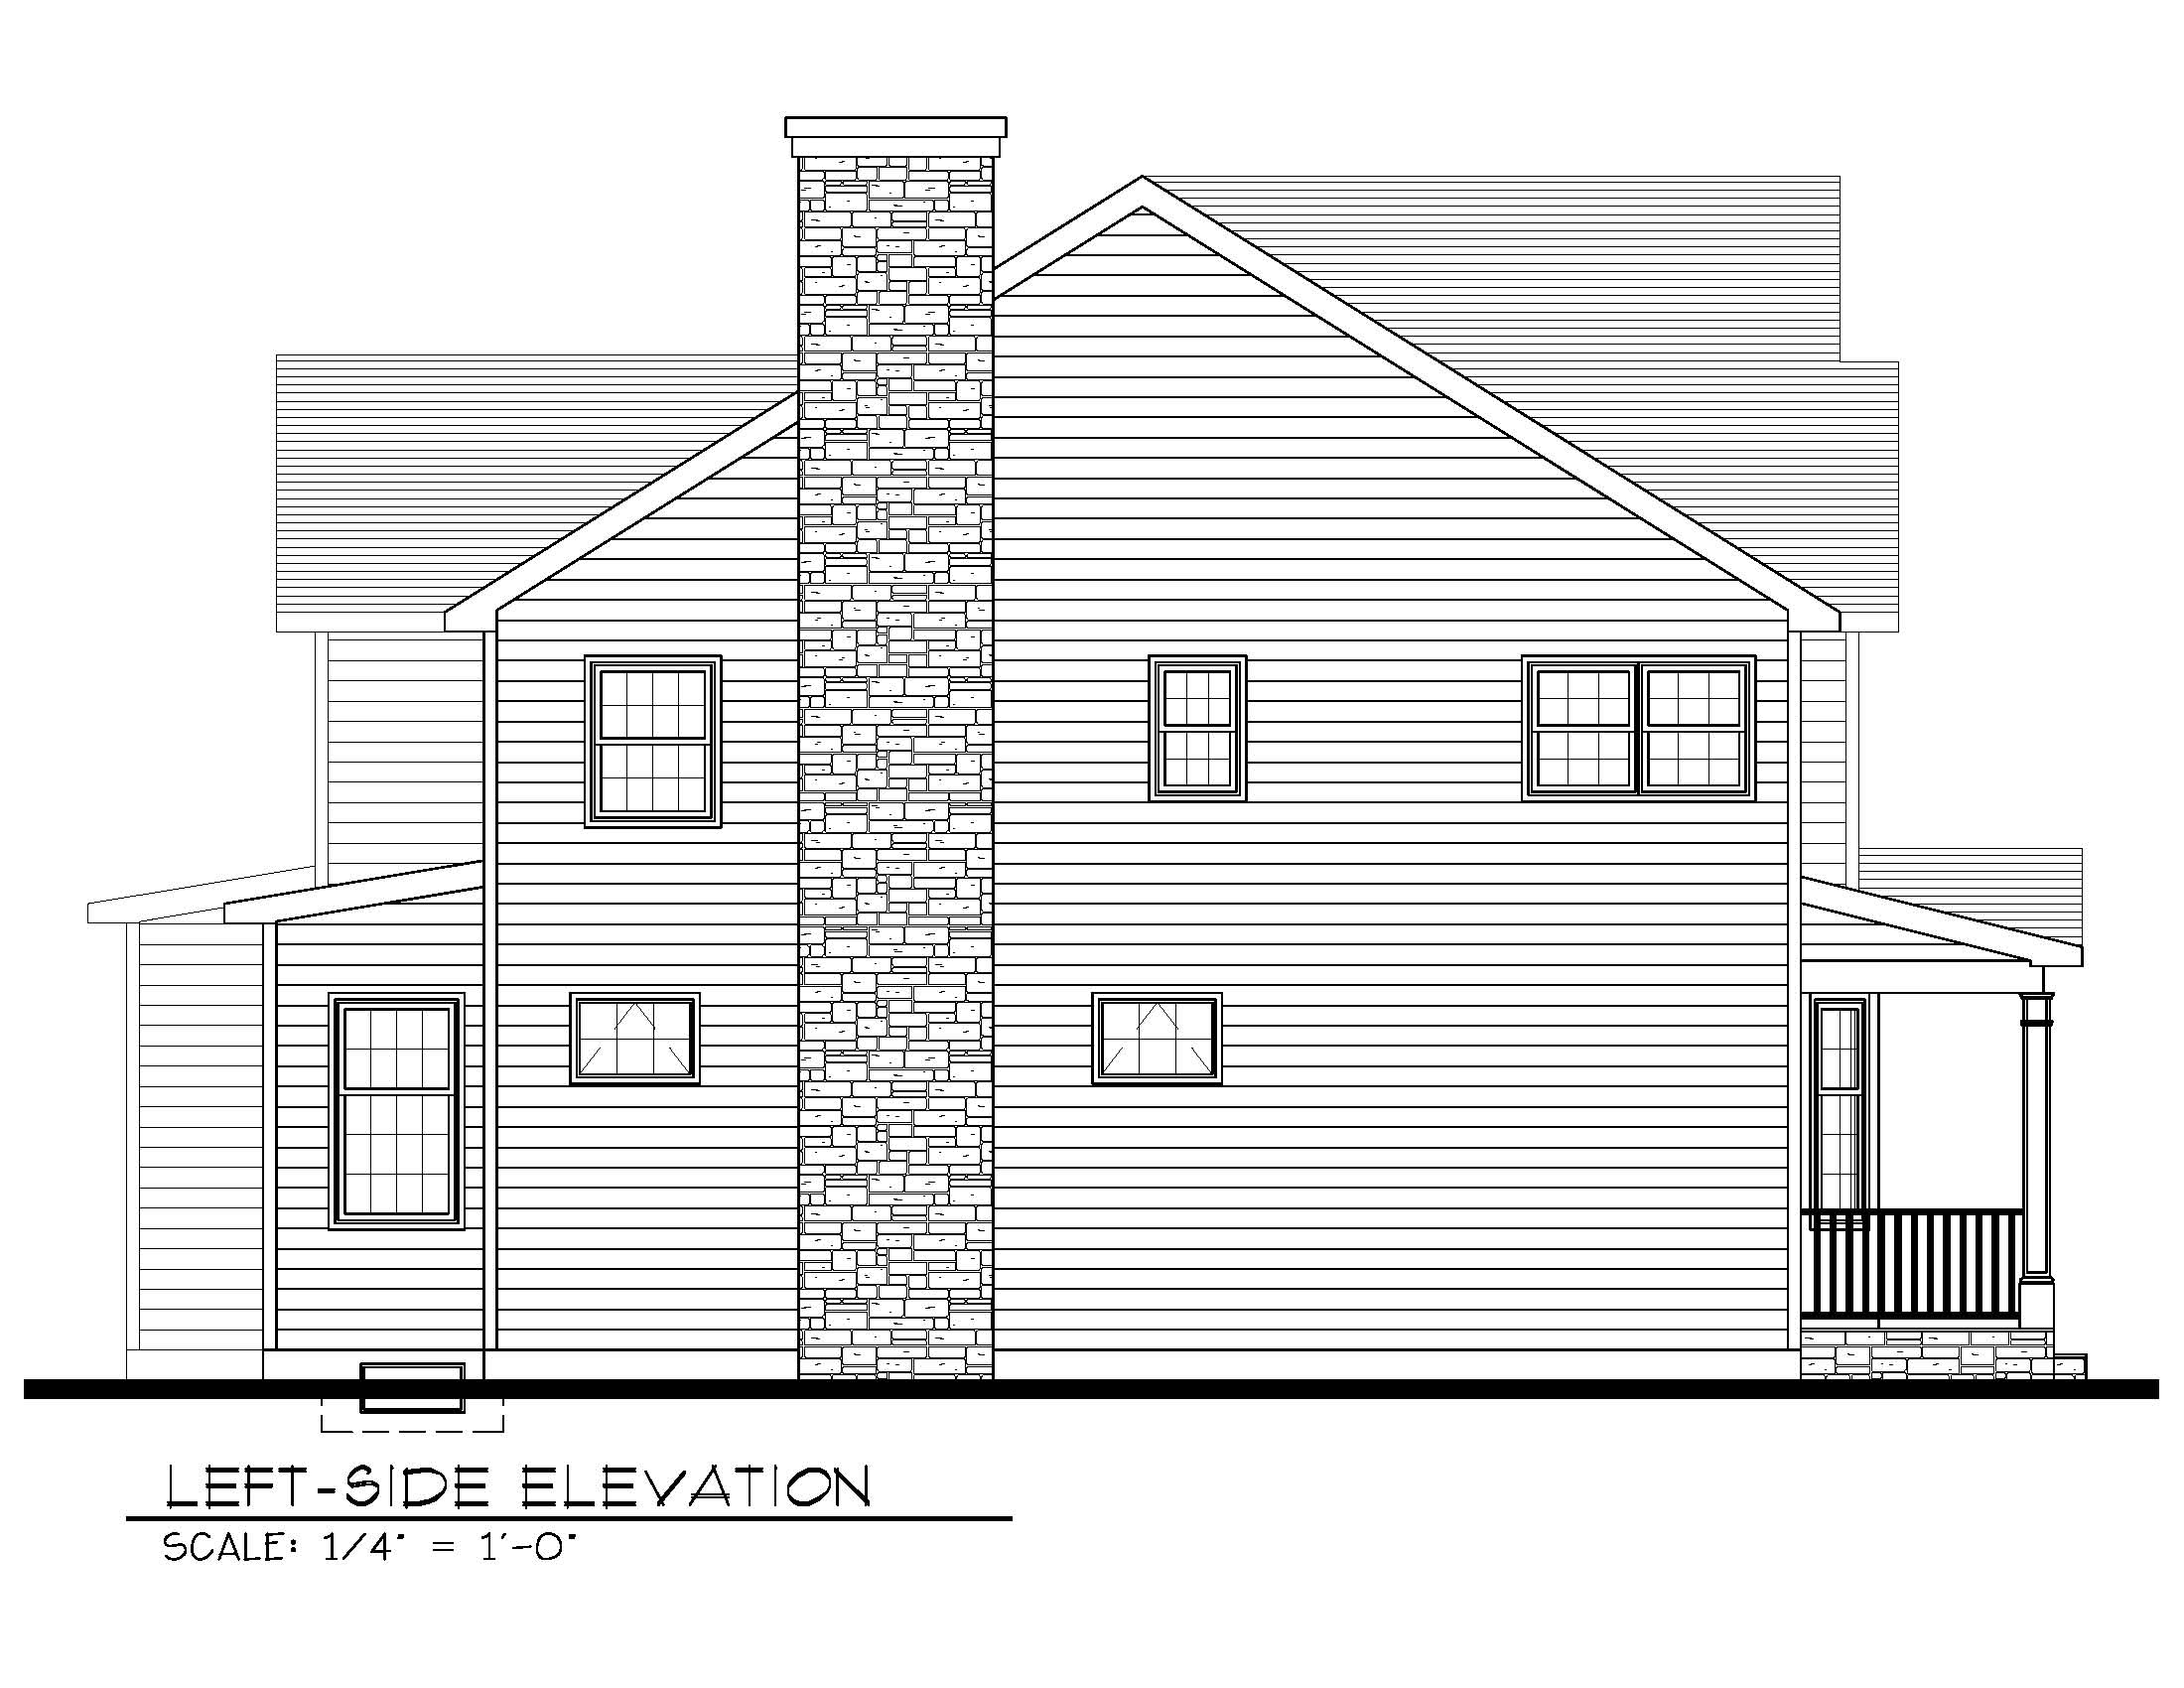 843 Left Side Elevation